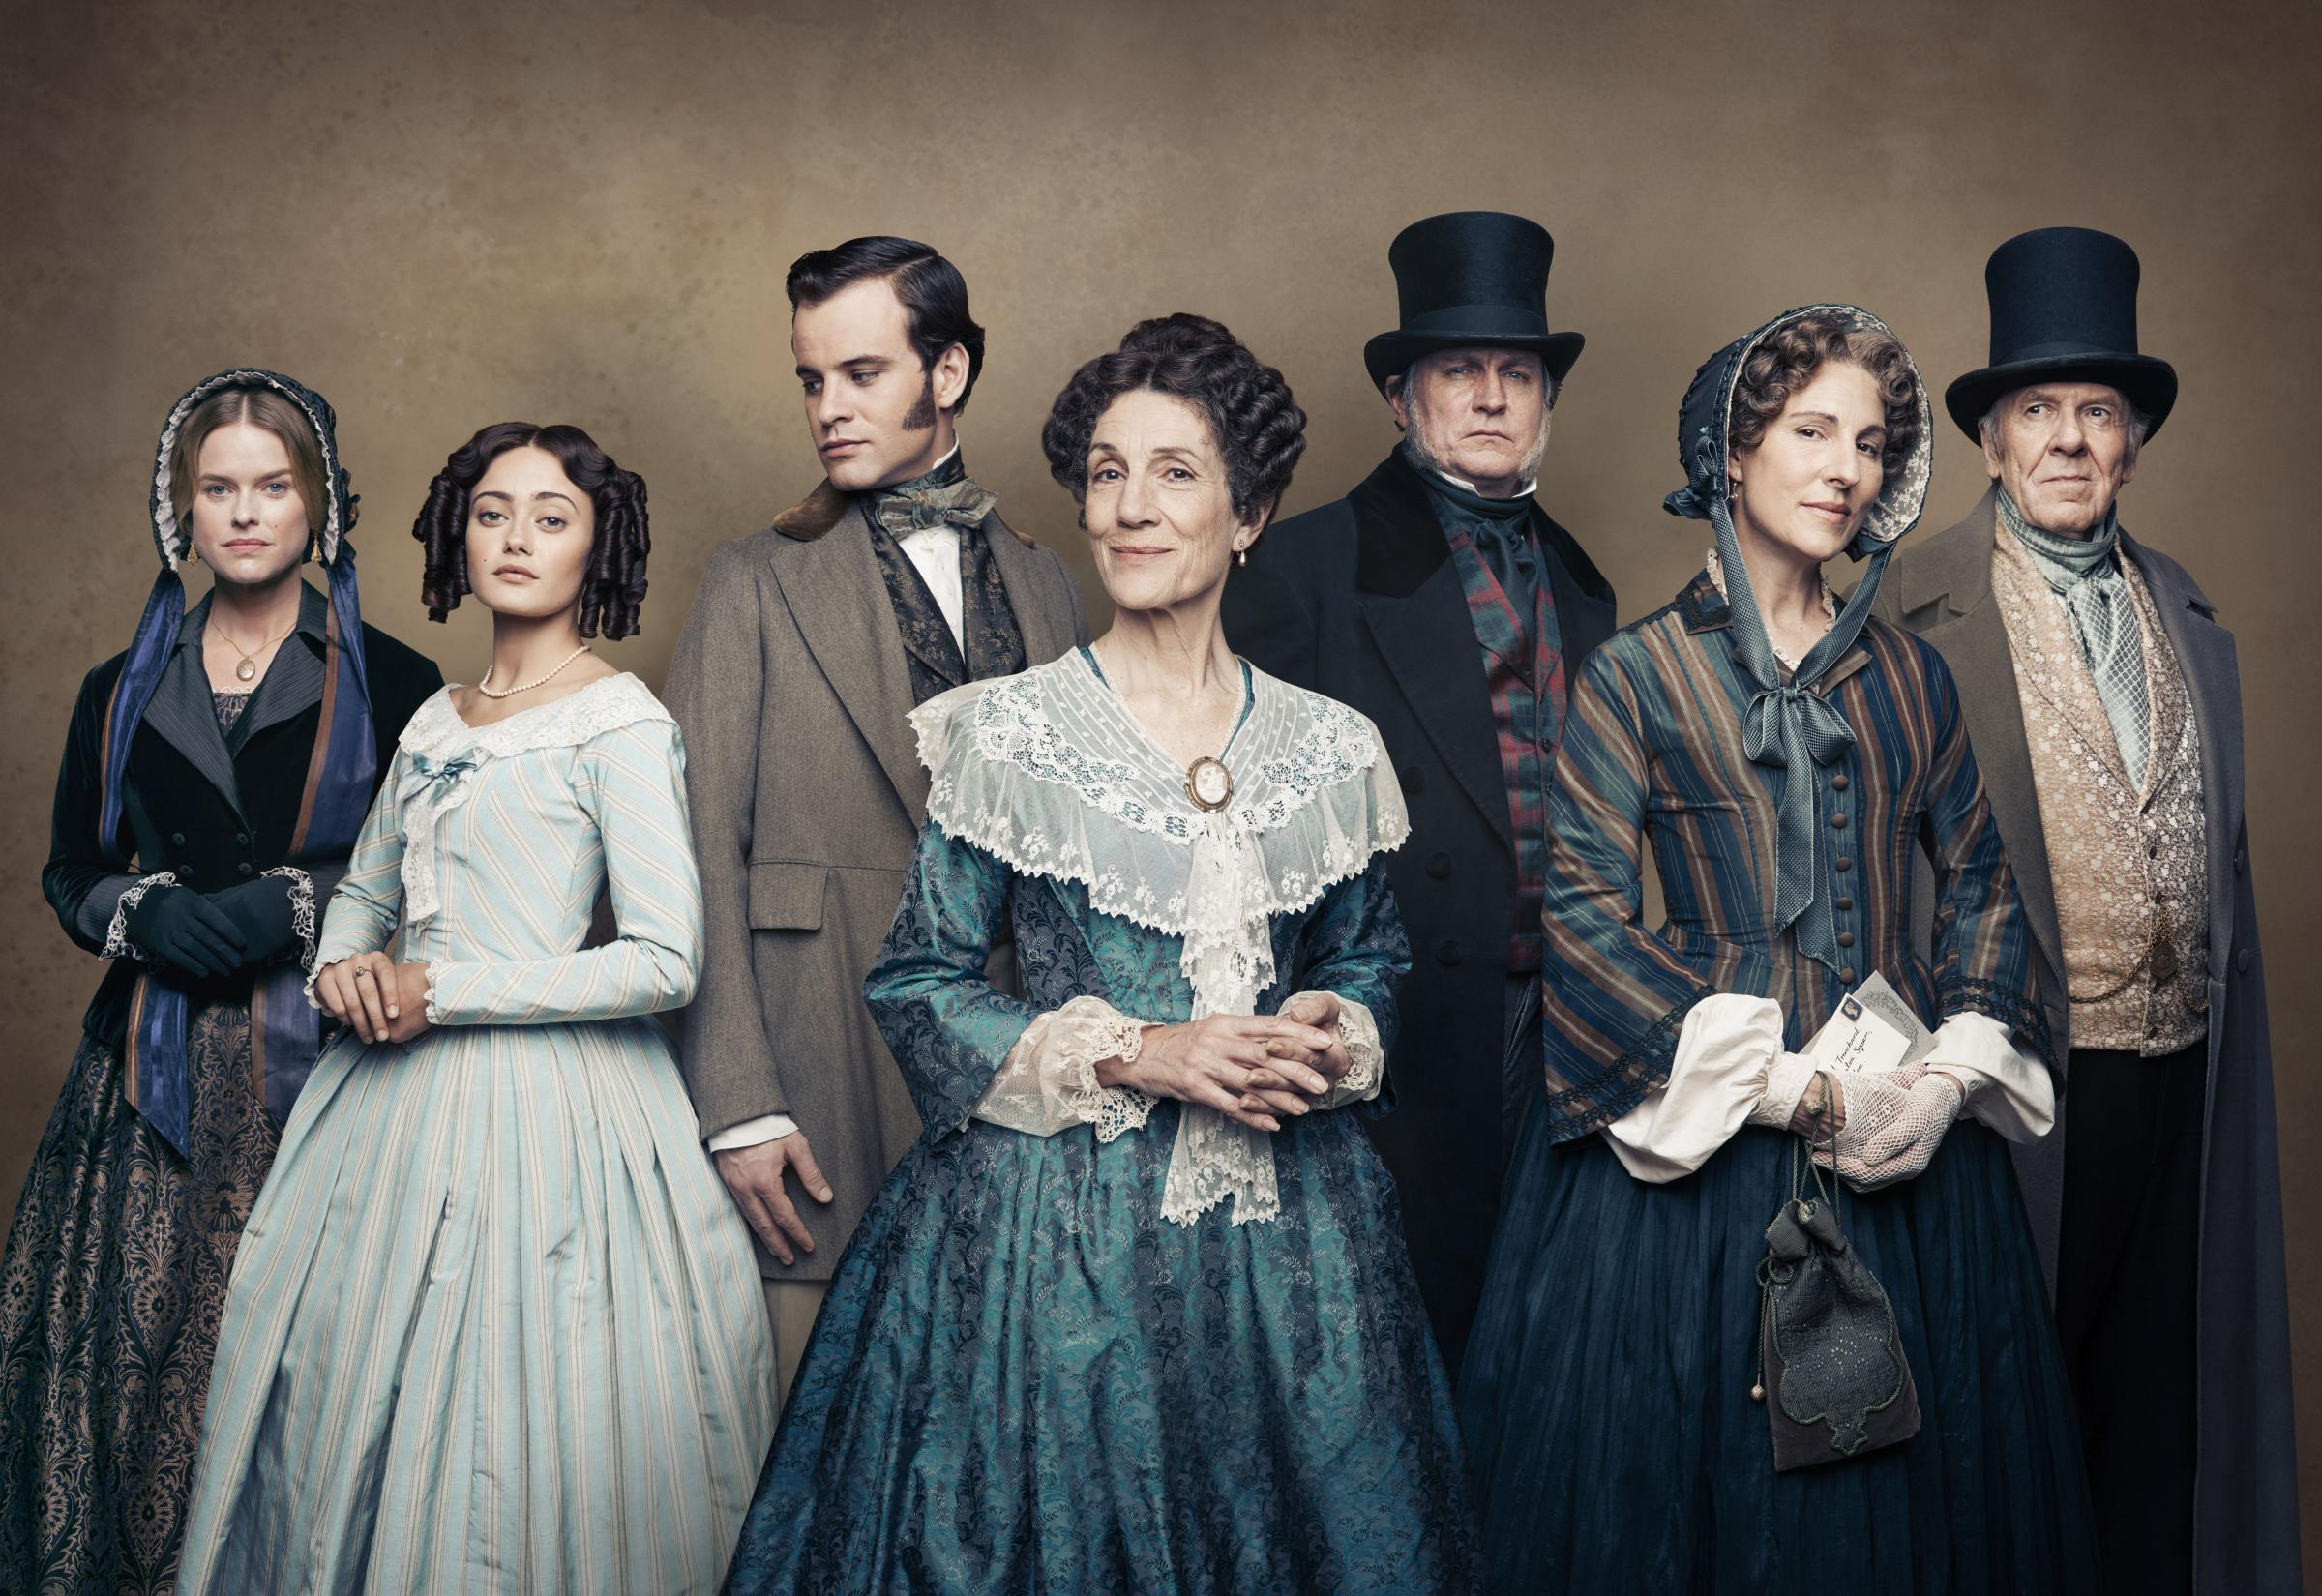 Downton Abbey creator Julian Fellowes is back at the double